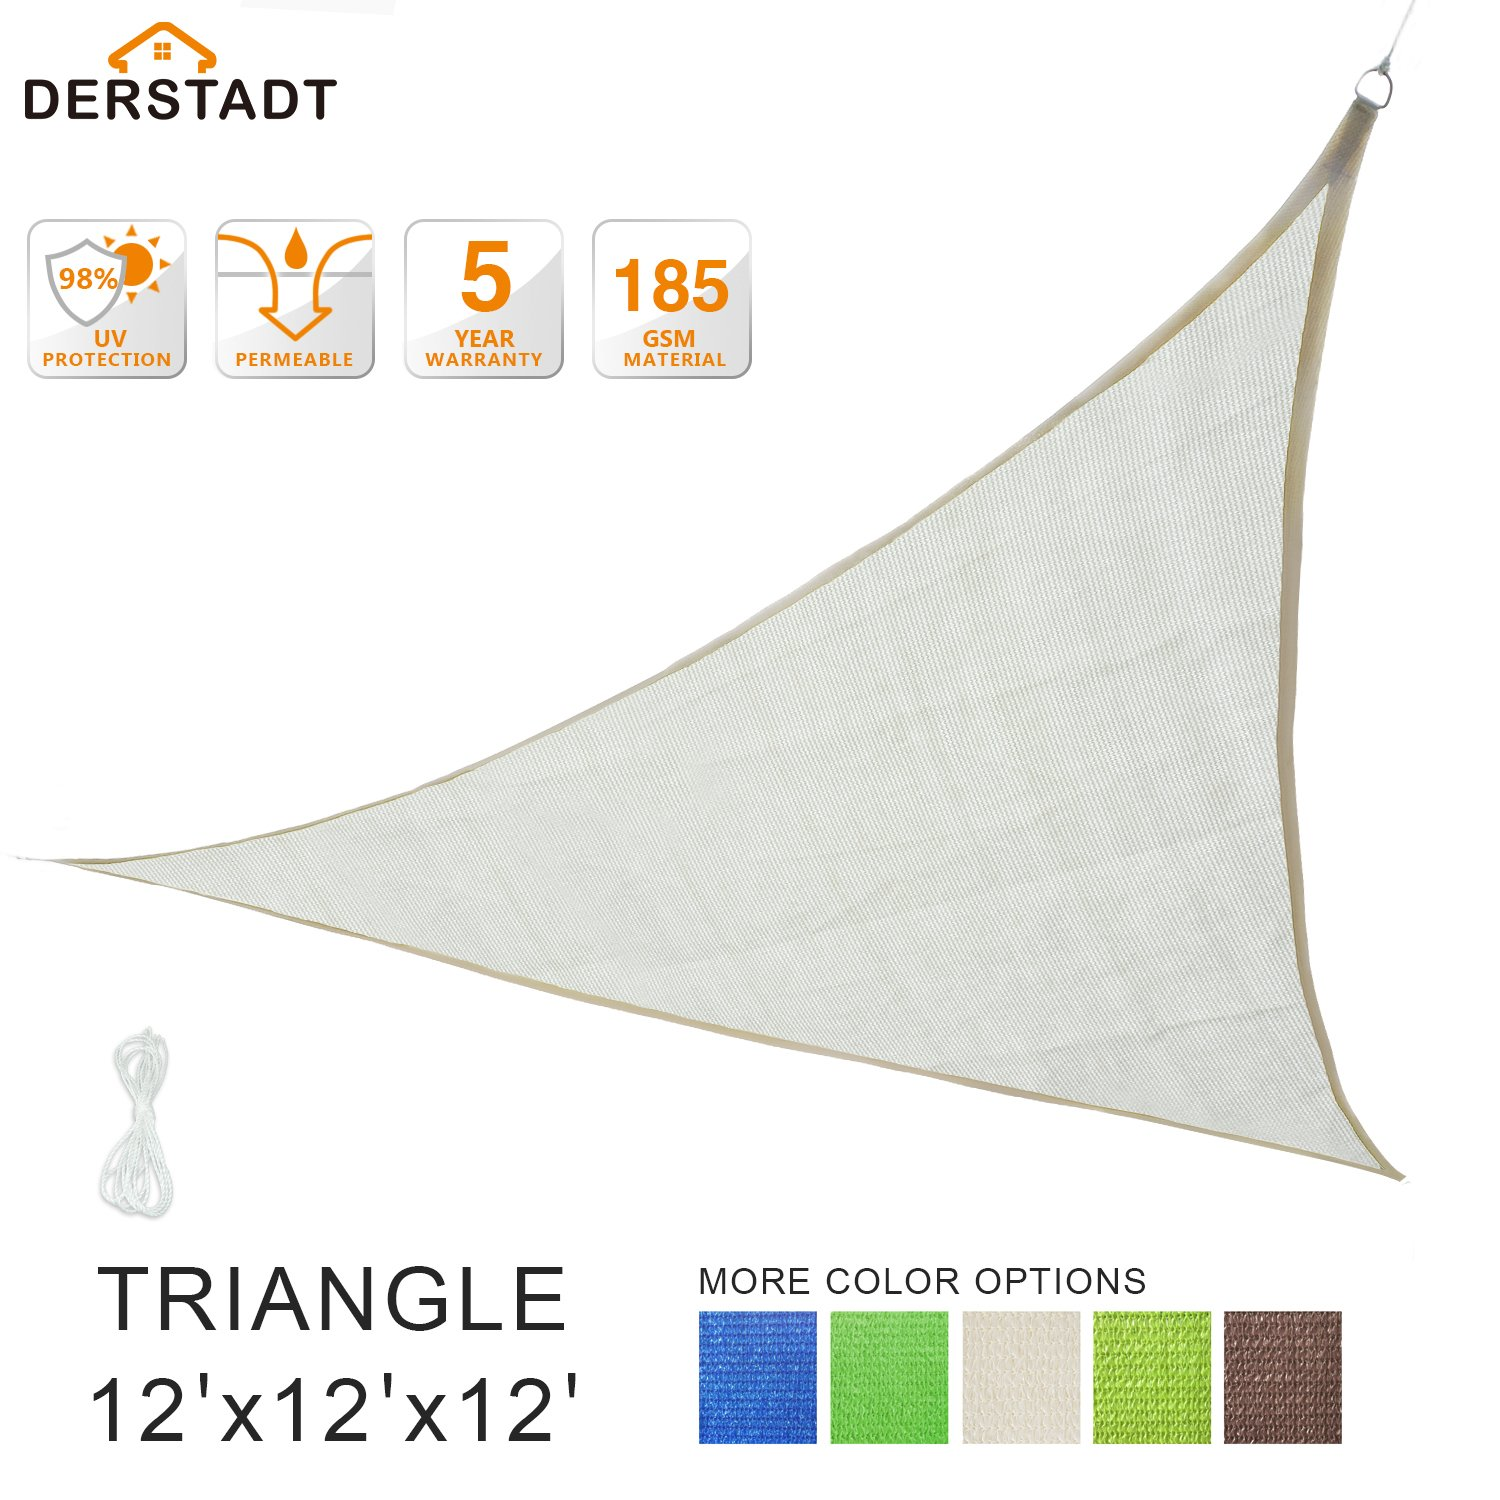 Derstadt Sun Shade Sail Outdoor Patio Canopy Backyard, Triangle